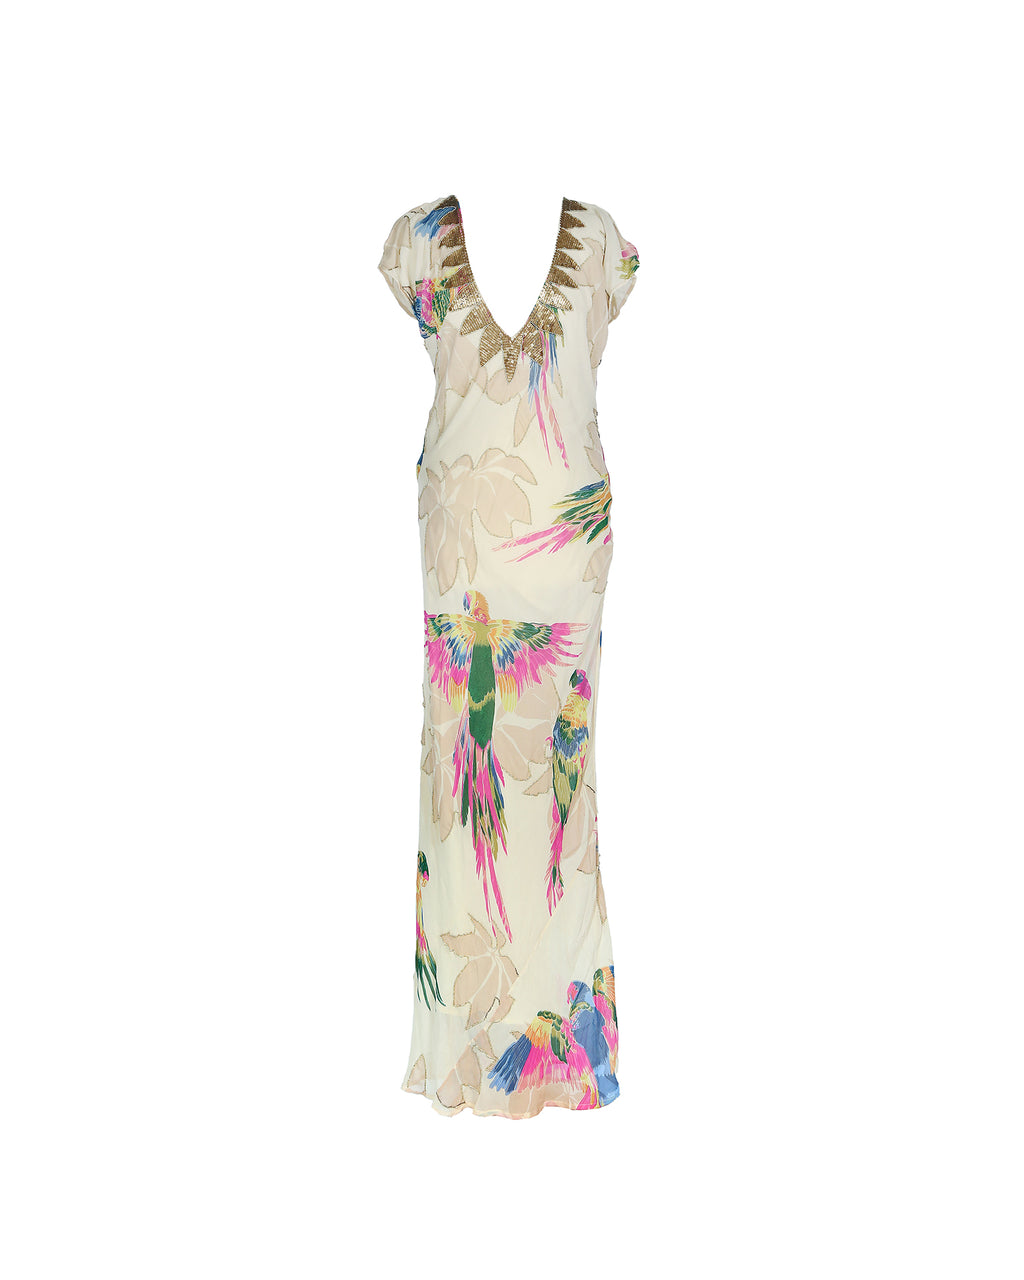 Matthew Williamson 100% Silk Long Embellished Dress in Beige Size 40 (EU)